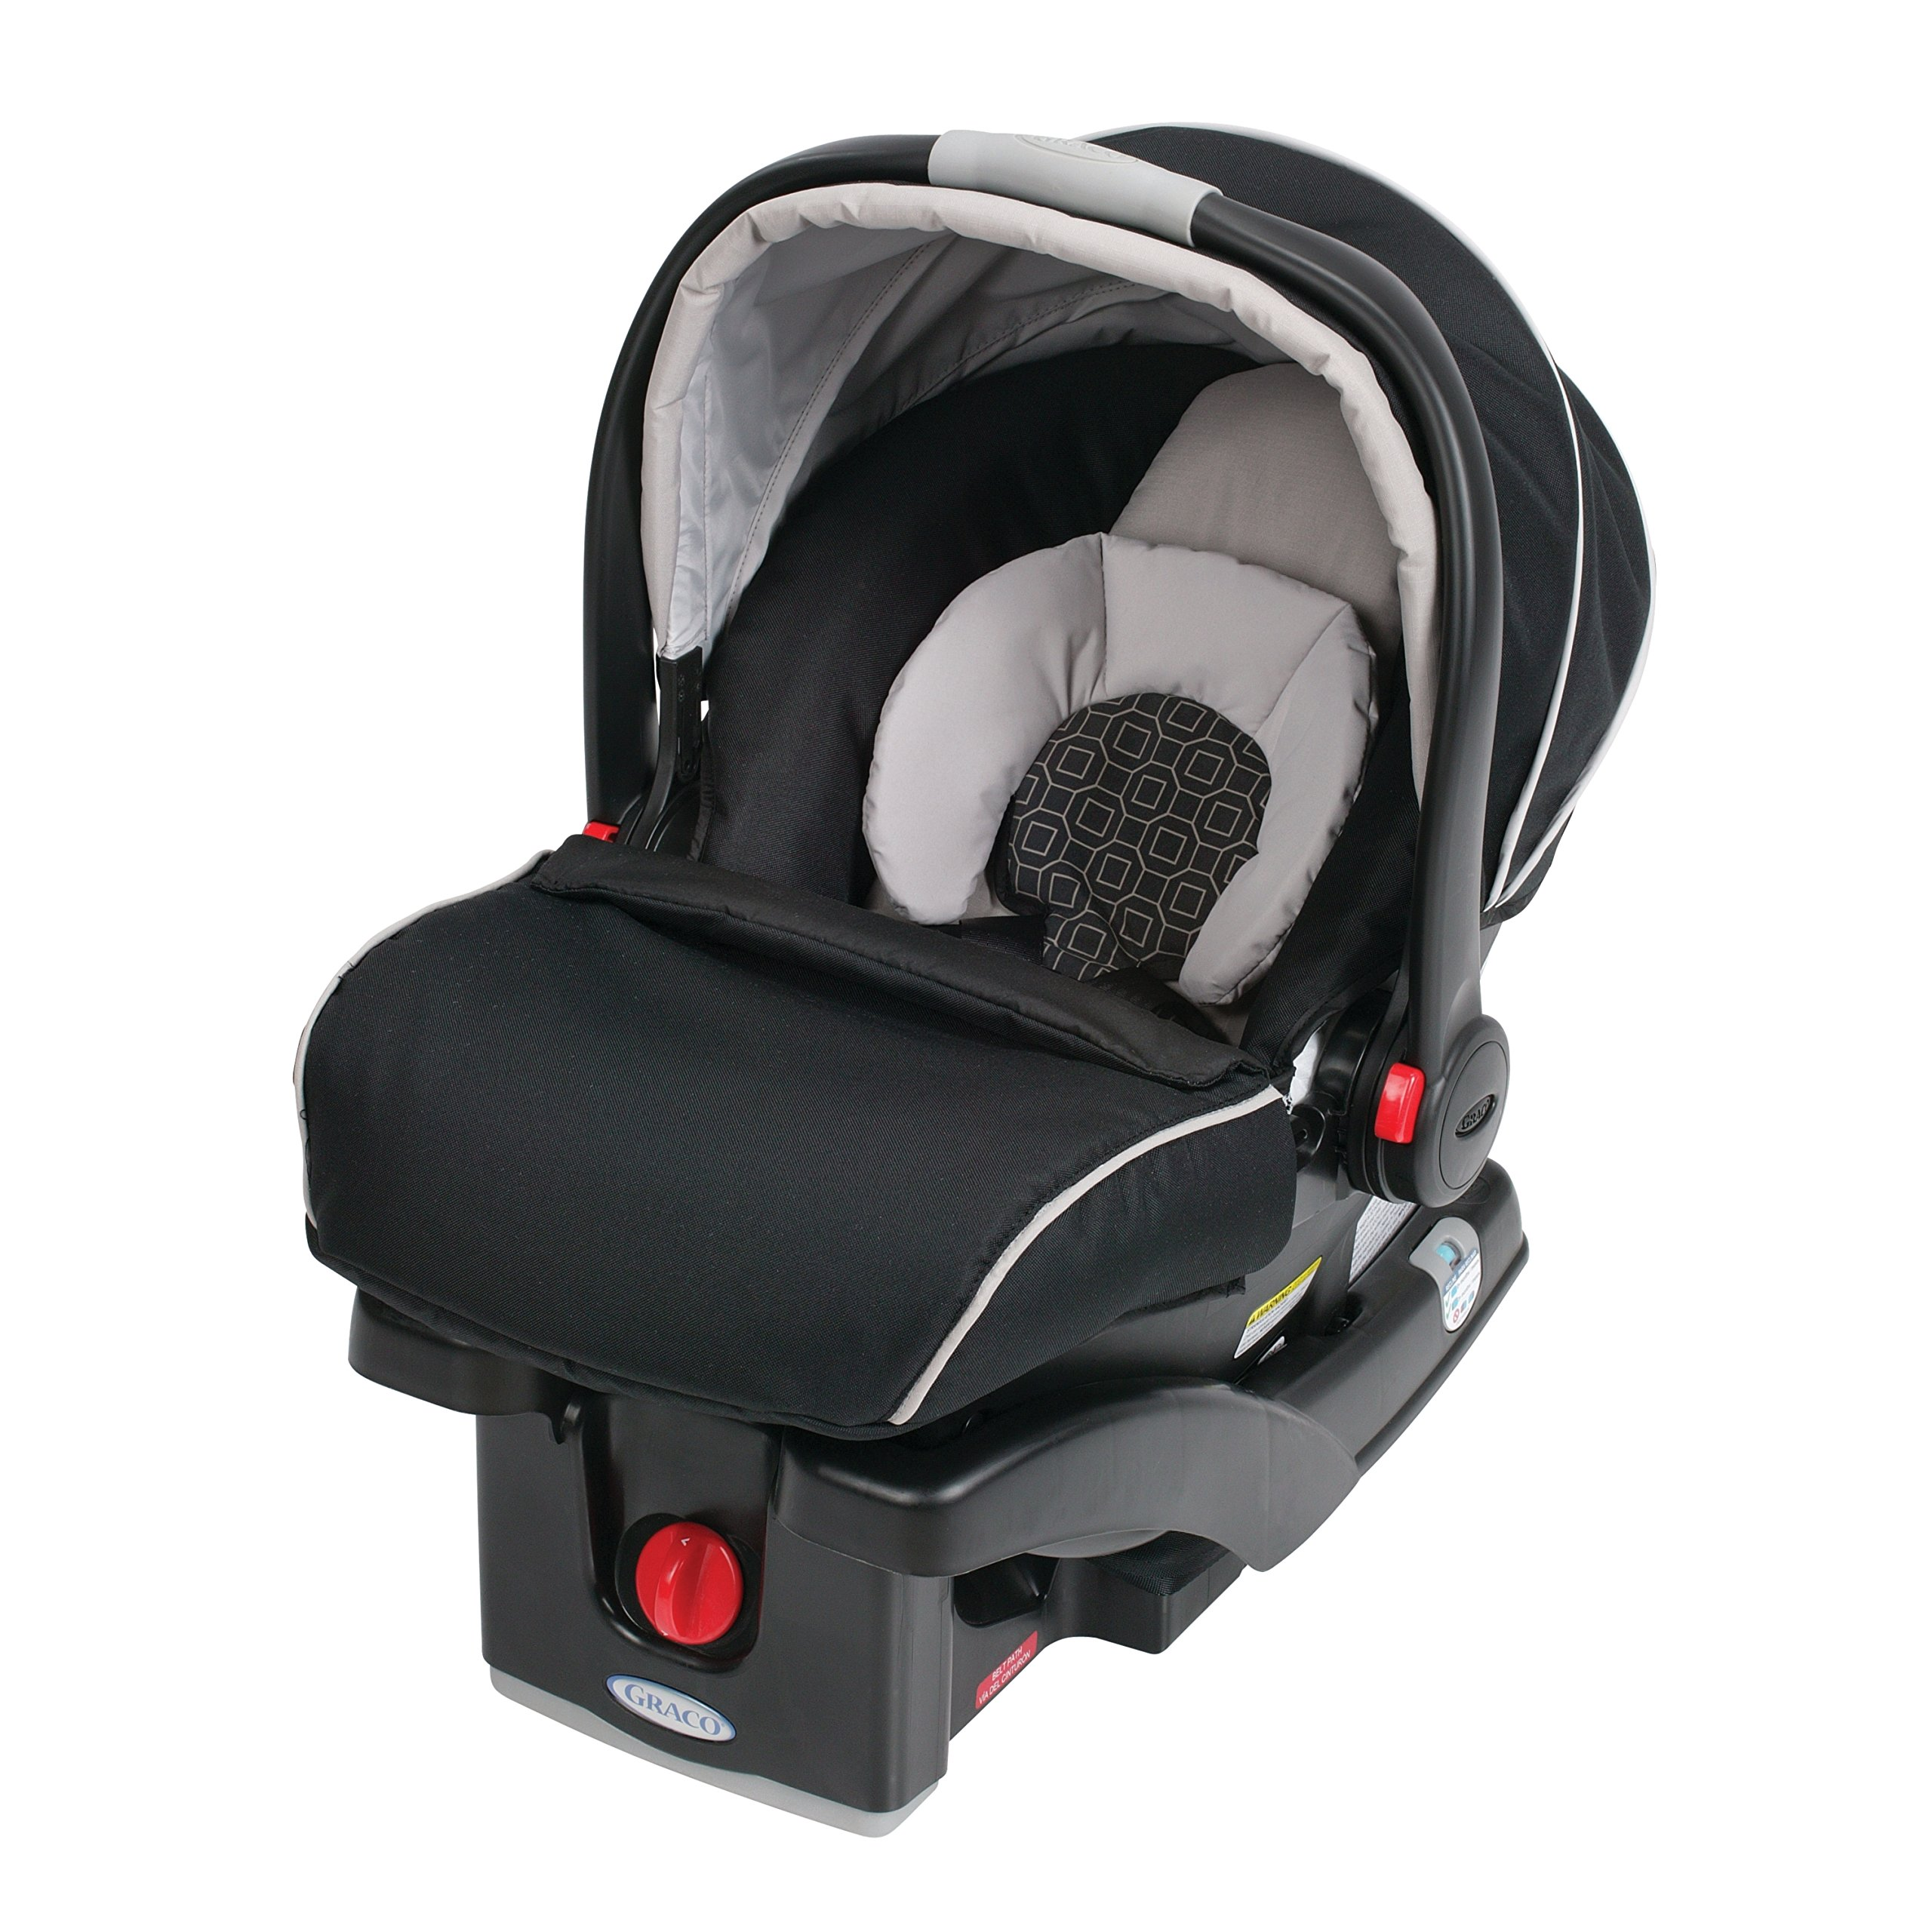 graco snugride click connect 30 35 lx infant car seat base black baby. Black Bedroom Furniture Sets. Home Design Ideas